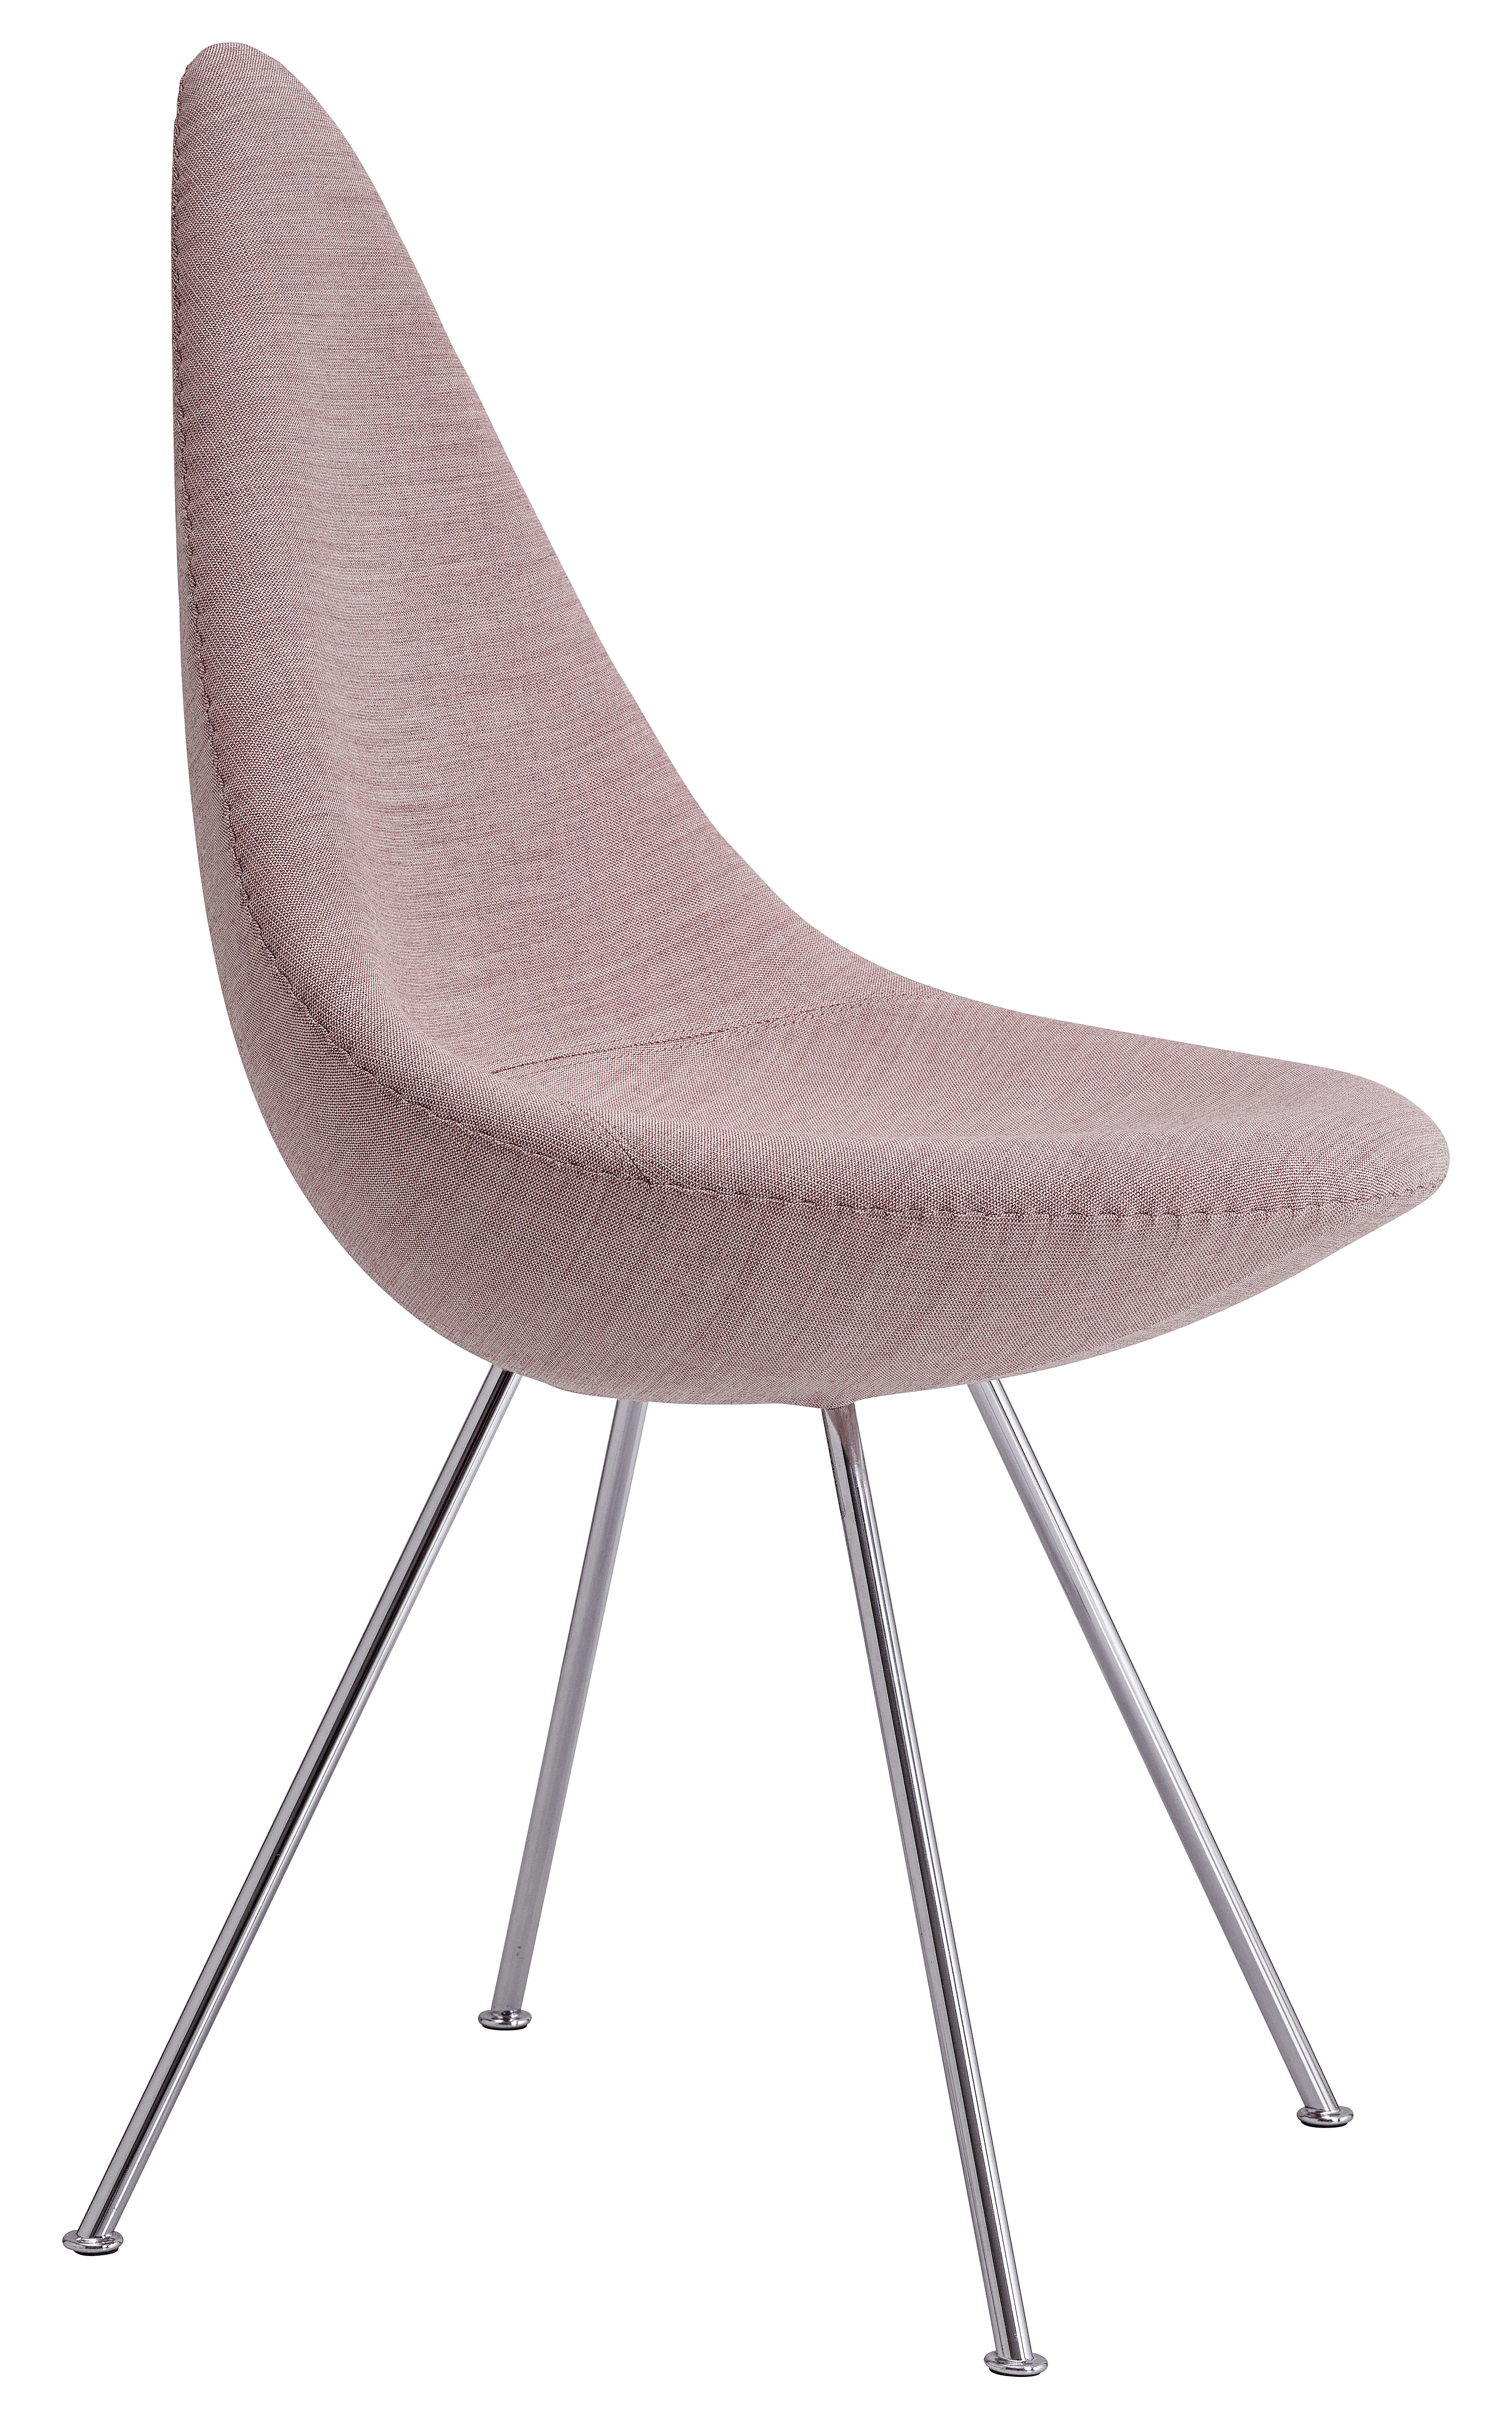 Chaise Rembourree Drop Tissu Reedition 1958 Rose Pale Chrome